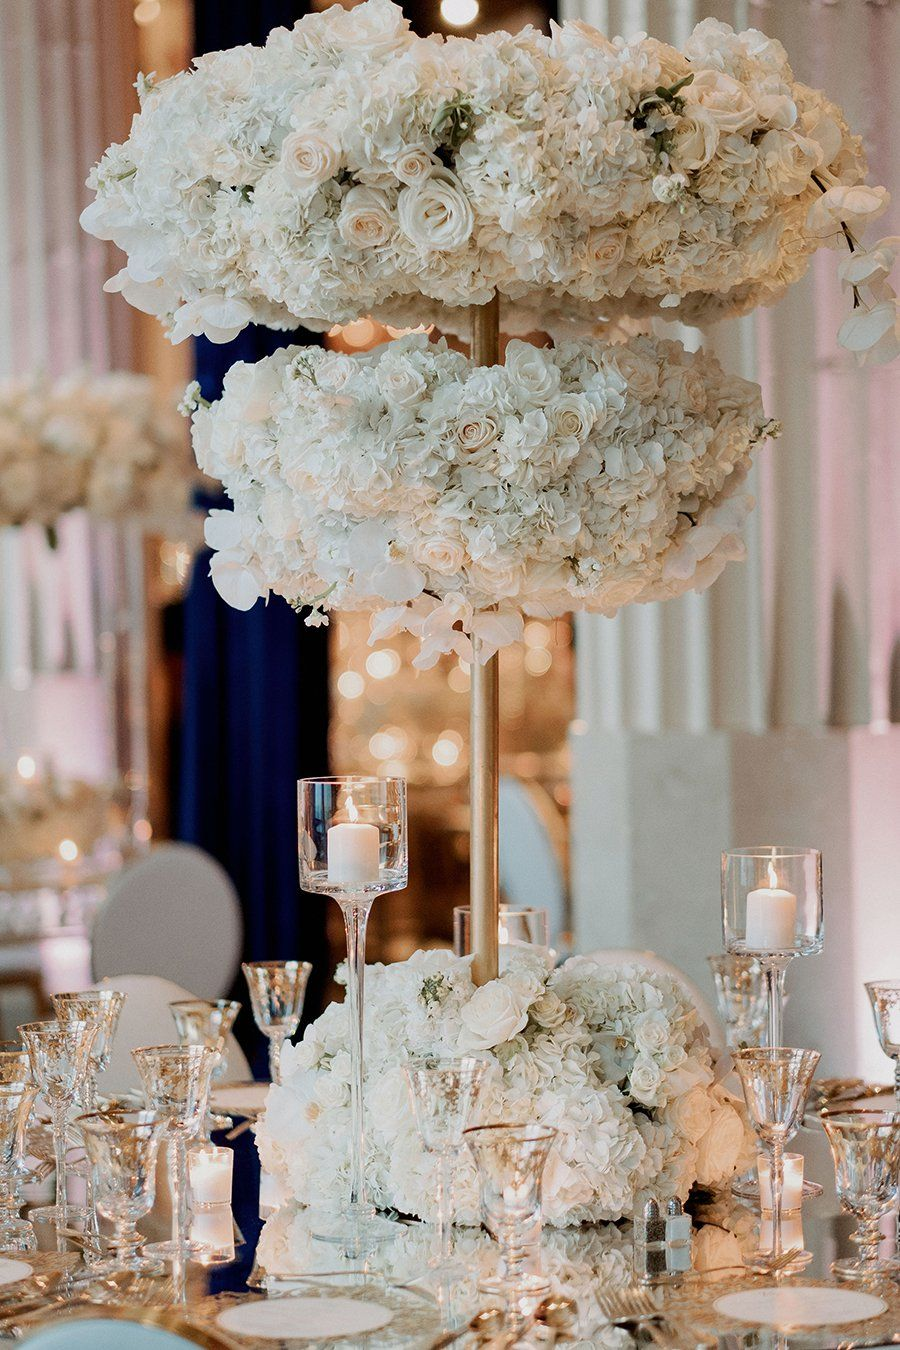 Victoria Eric Real Wedding Weddings In Houston White Floral Centerpieces Floral Centerpieces Wedding Decorations